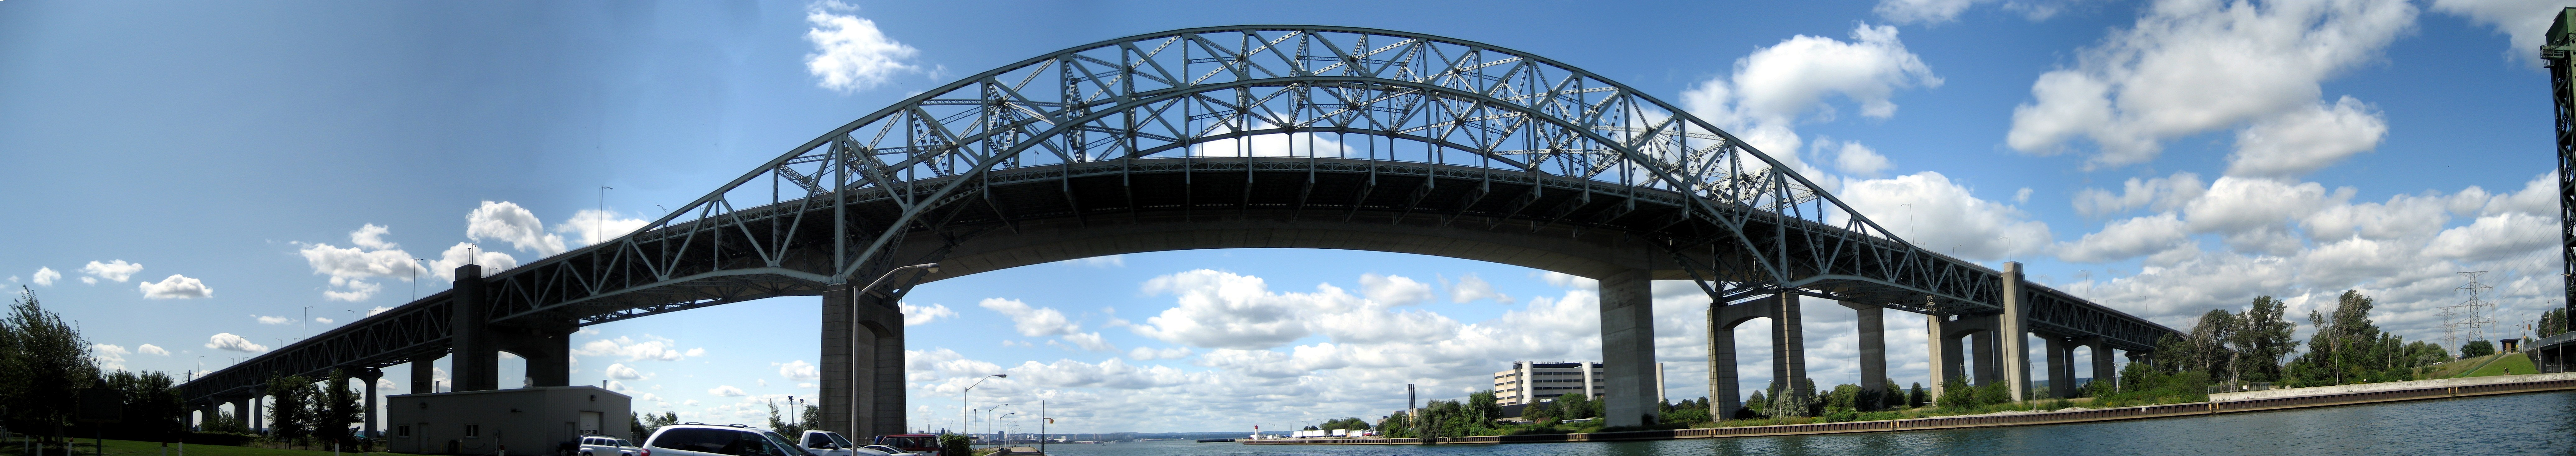 http://upload.wikimedia.org/wikipedia/commons/2/28/Projectskyway.jpg